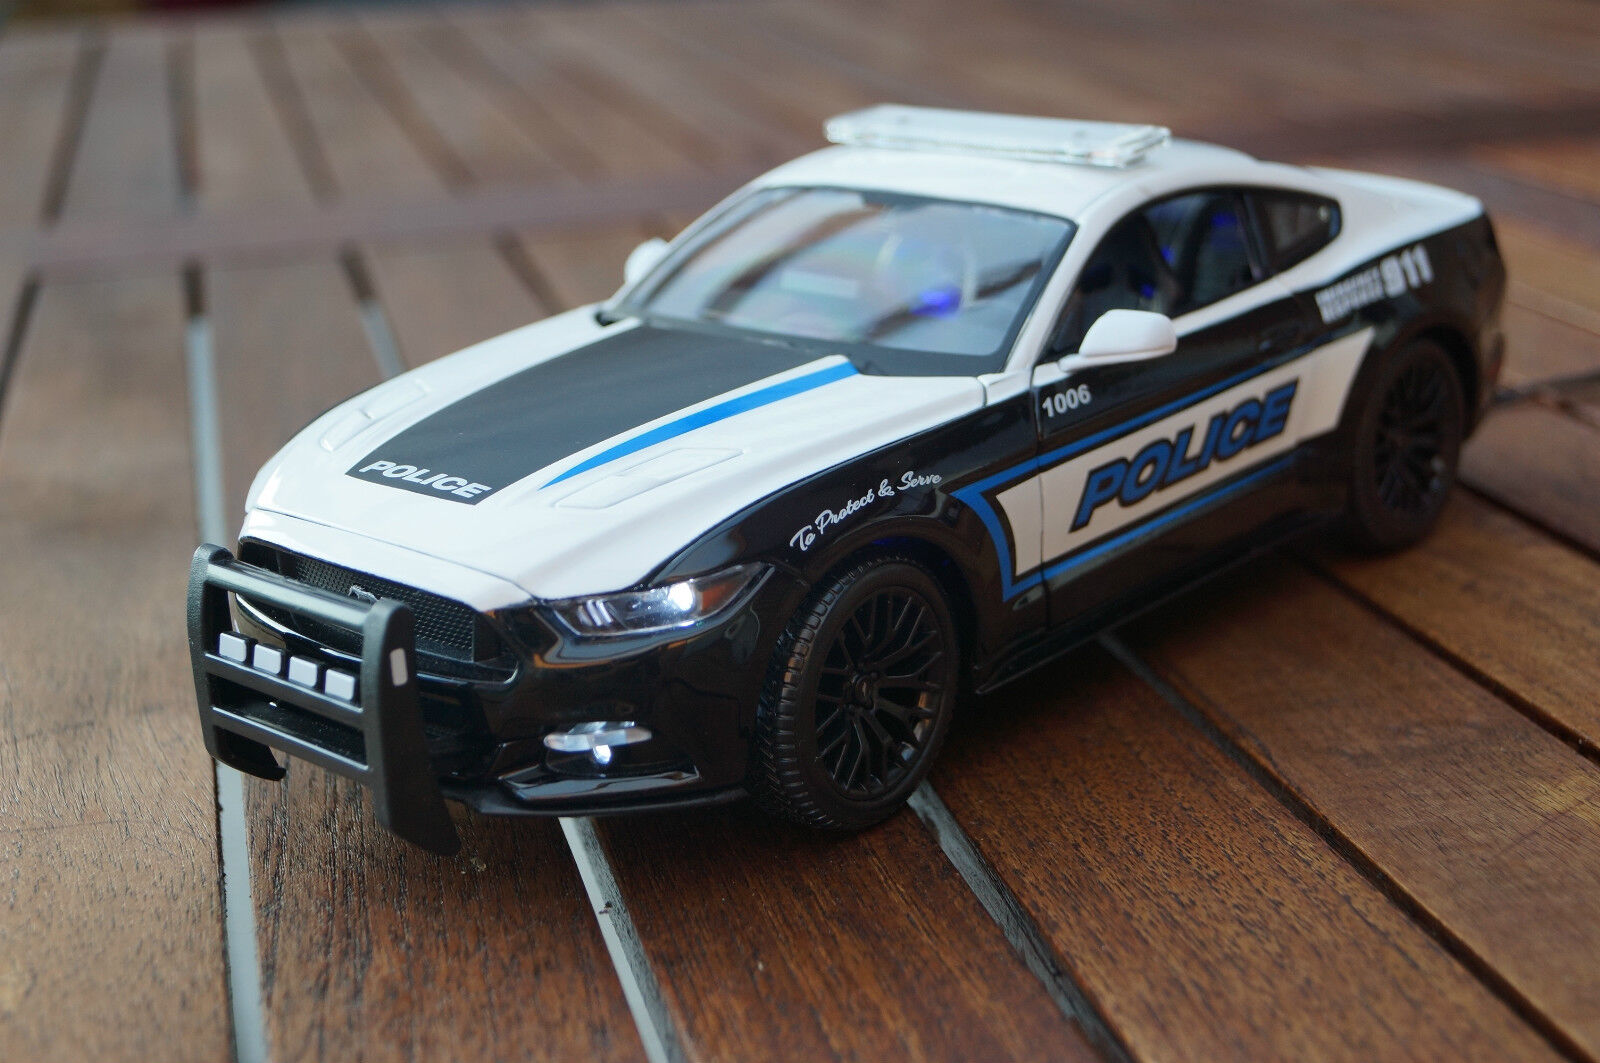 2015 Ford Mustang GT Police Police DEL-éclairage (Xénon) 1  18 Maisto  sortie